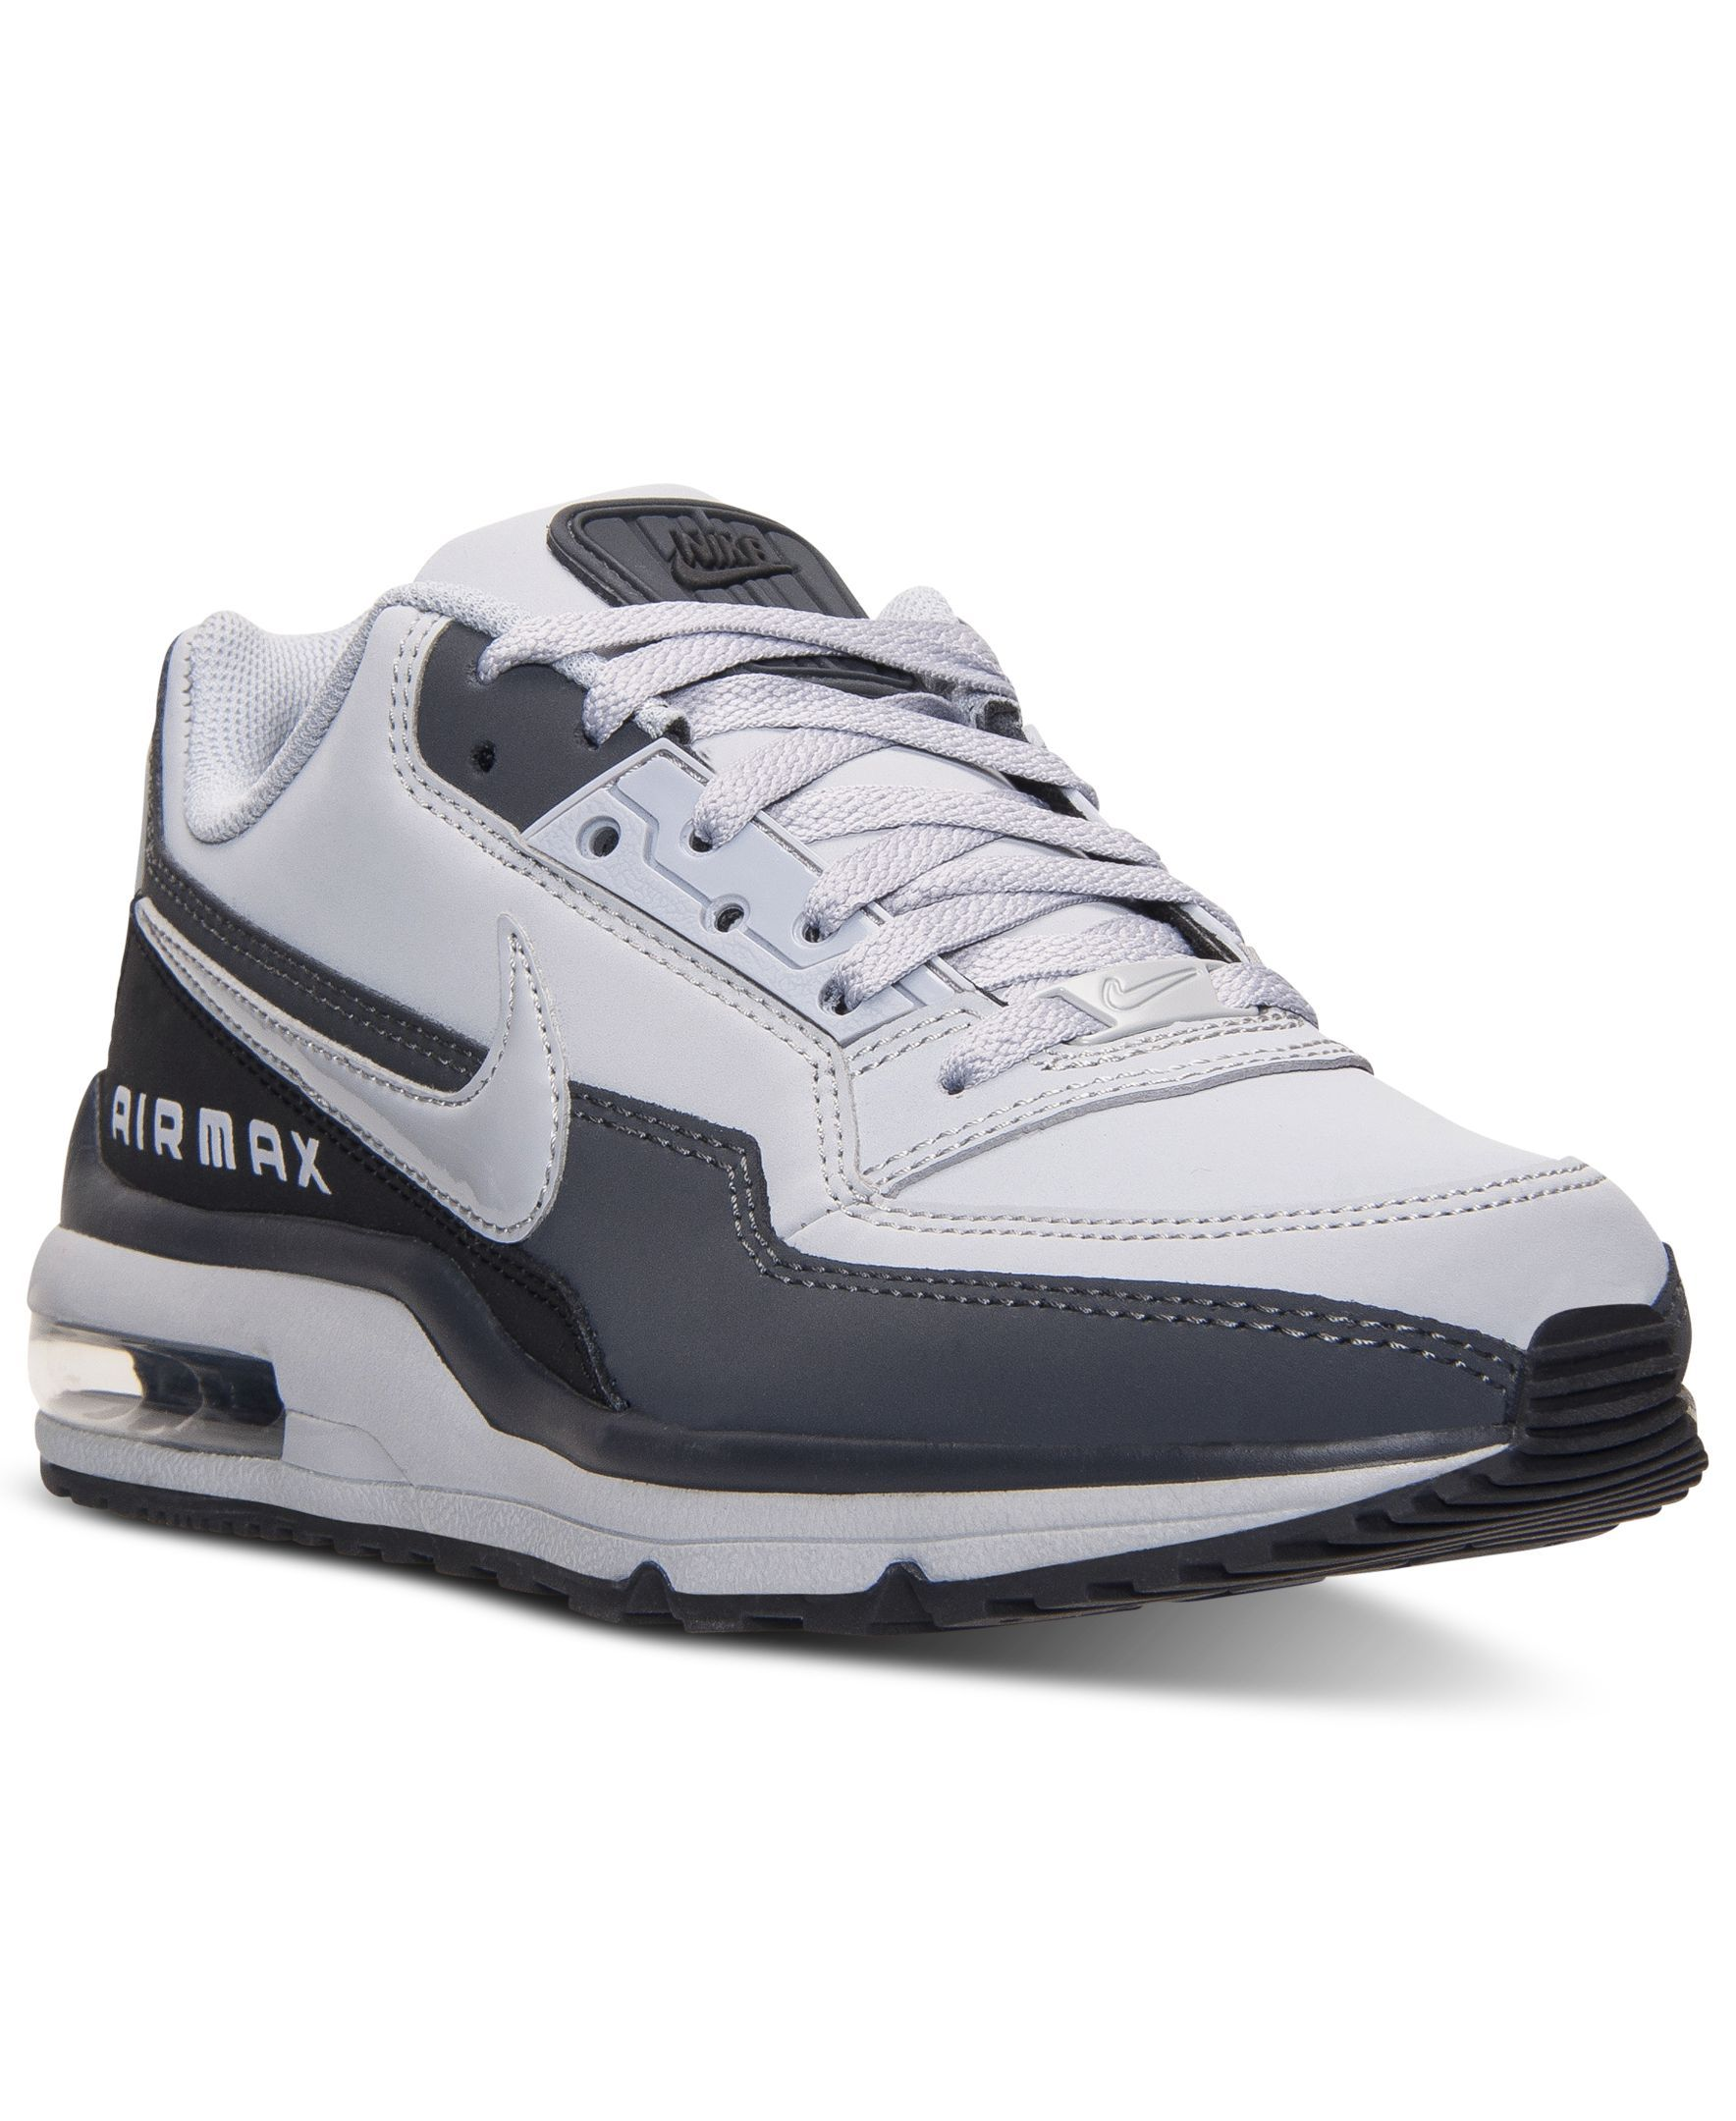 low priced 7a11a e561f Nike Men s Air Max Ltd 3 Running Sneakers from Finish Line